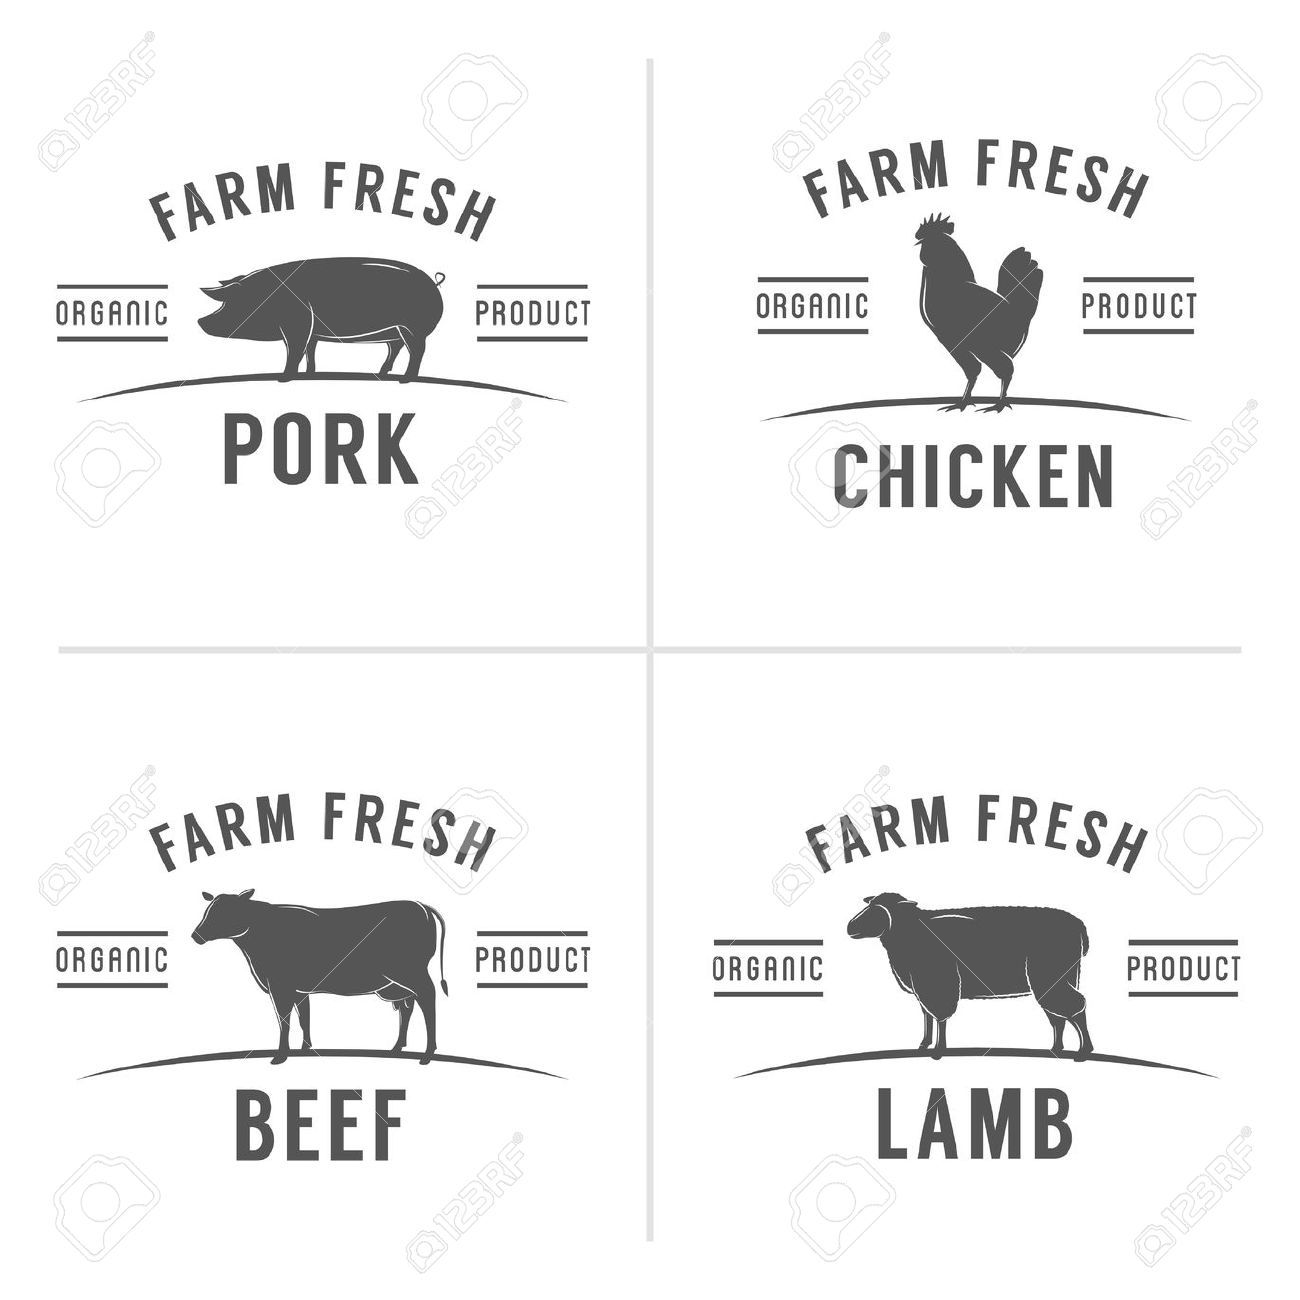 Cow And Pig Clipart - Google Search